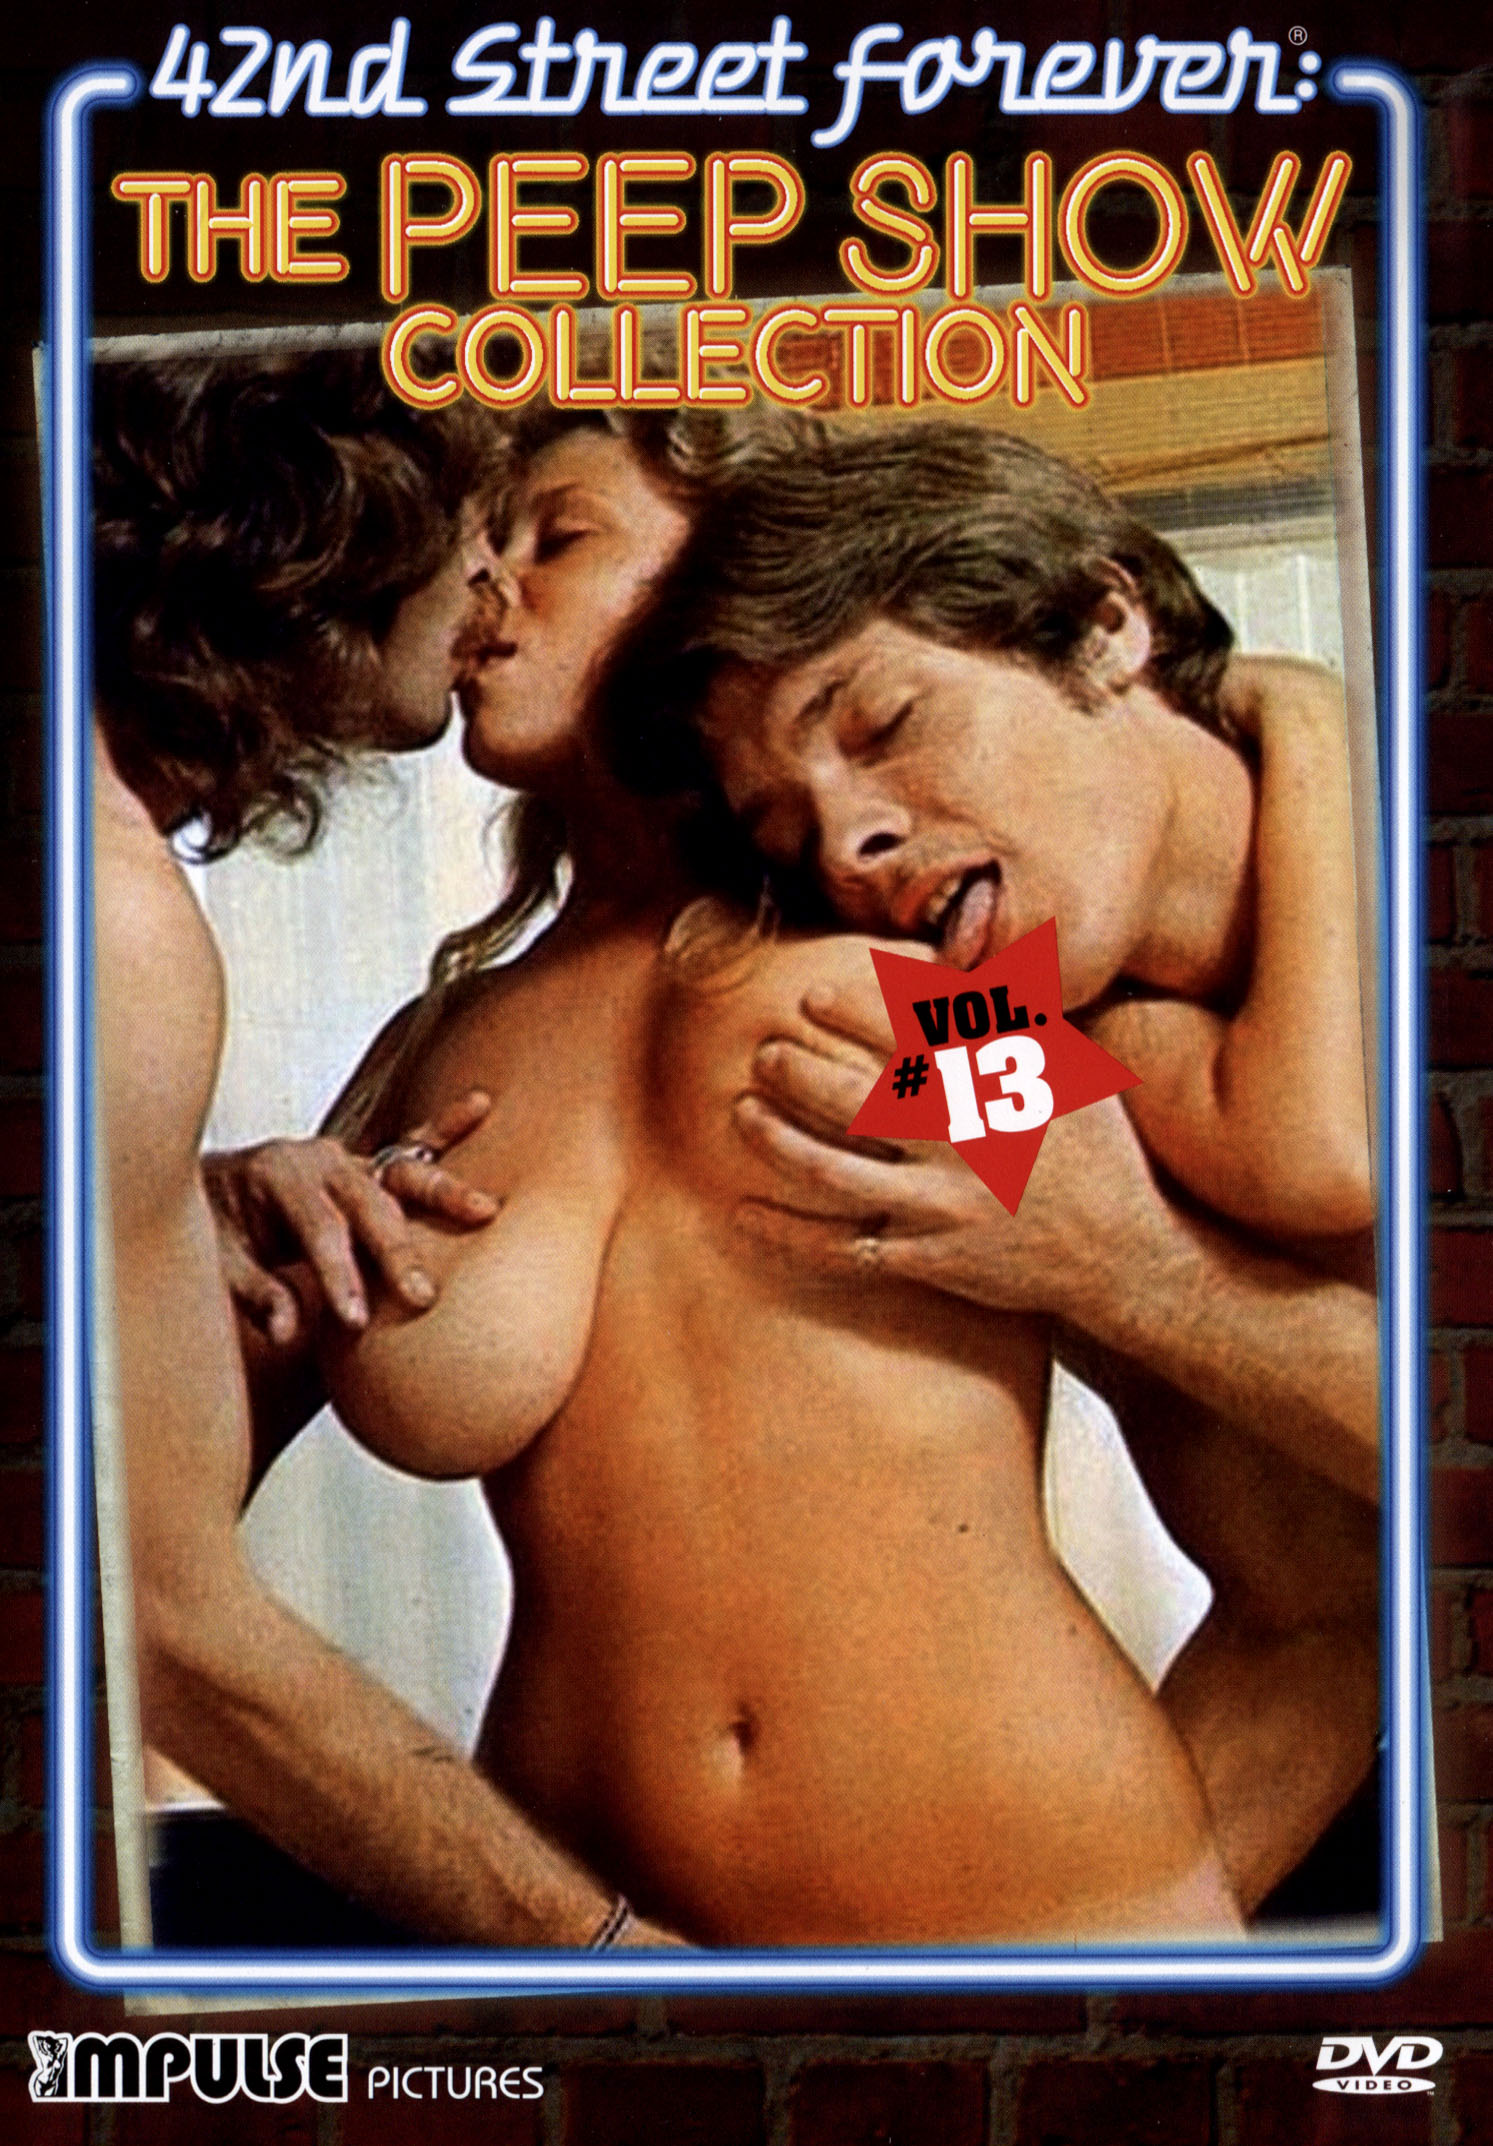 42nd Street Forever: The Peep Show Collection, Vol. 13